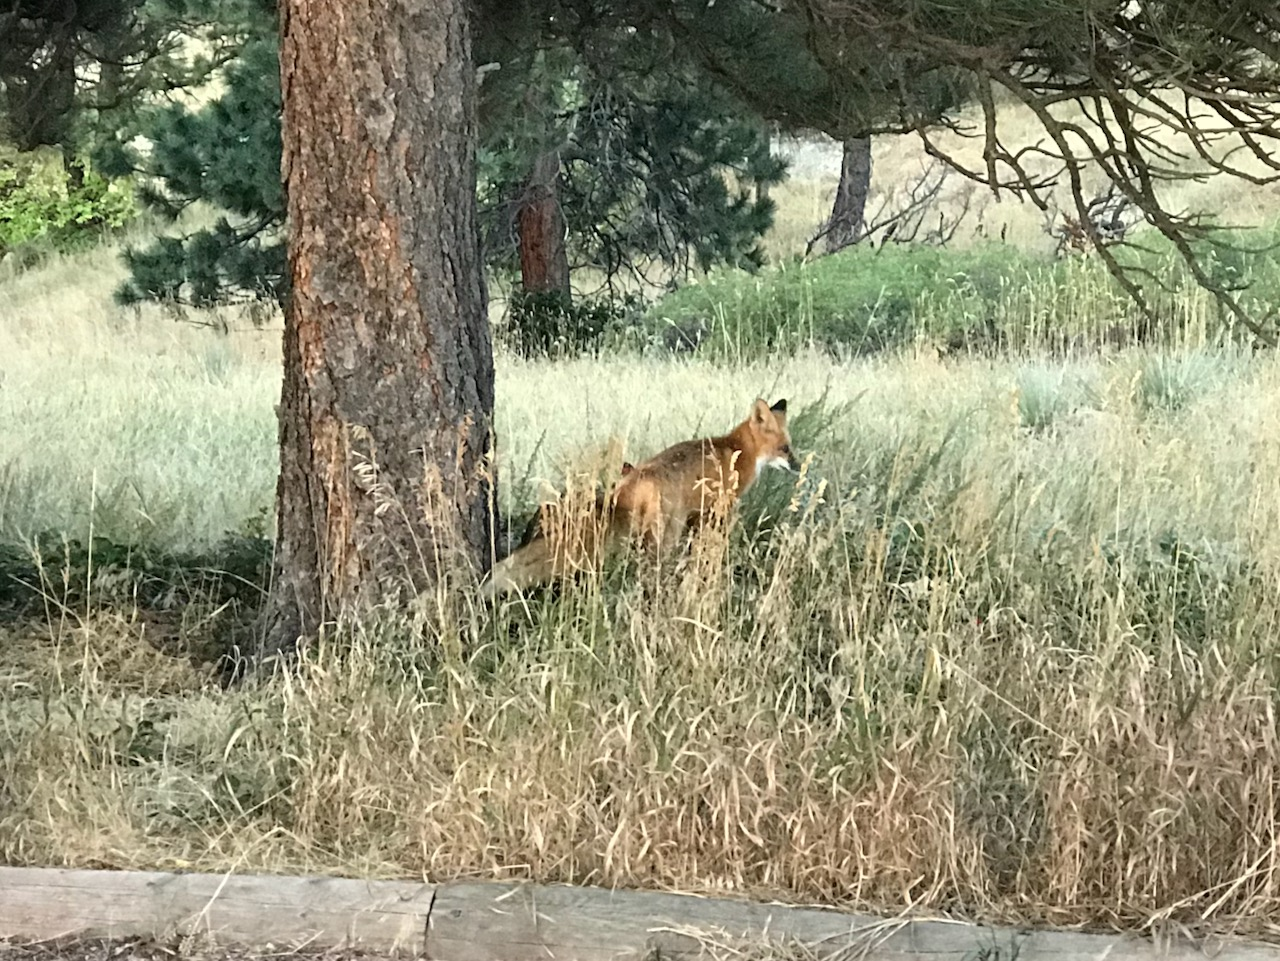 Red fox ambles by